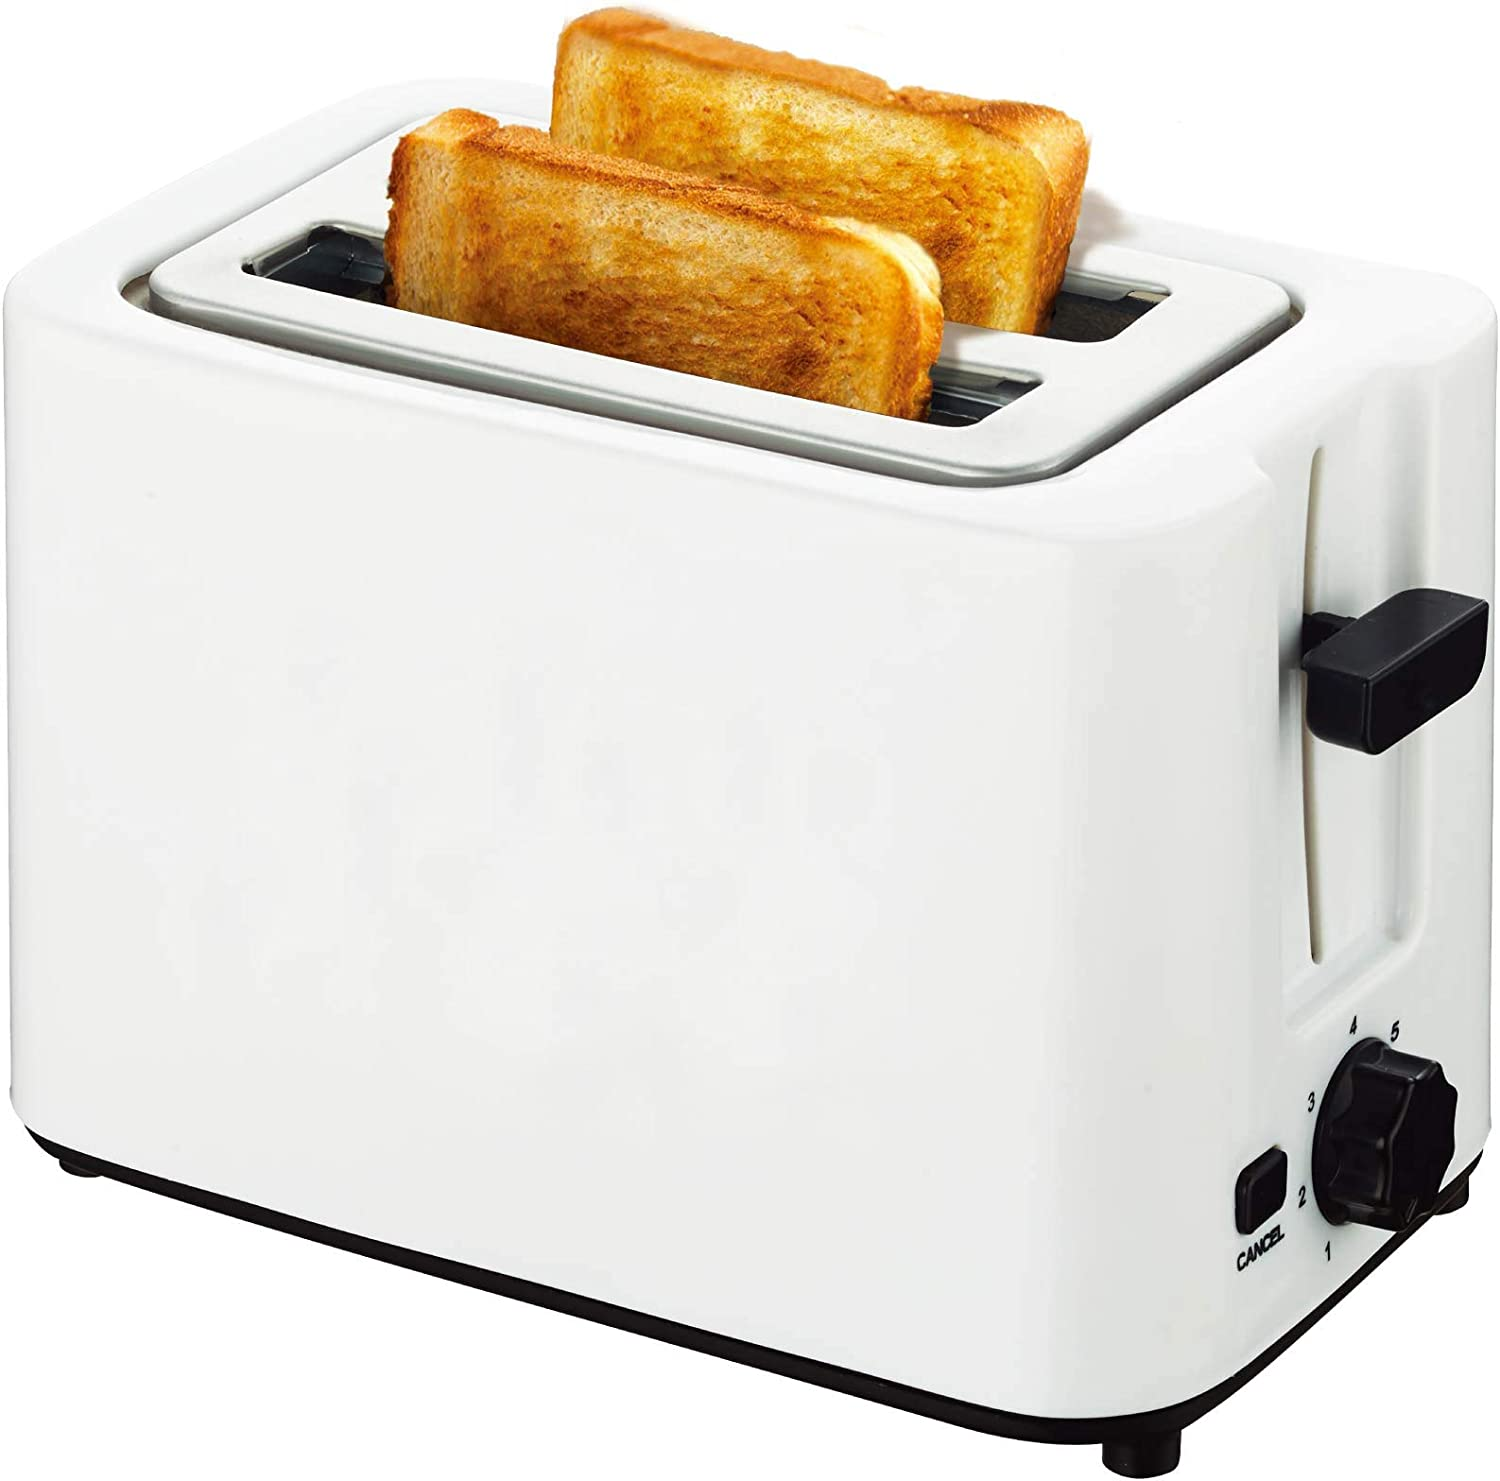 2-Slice Toaster, Extra-Wide Slot, Cool White Toaster With Cancel Function, 2-slice Toaster and Removable Crumb Tray